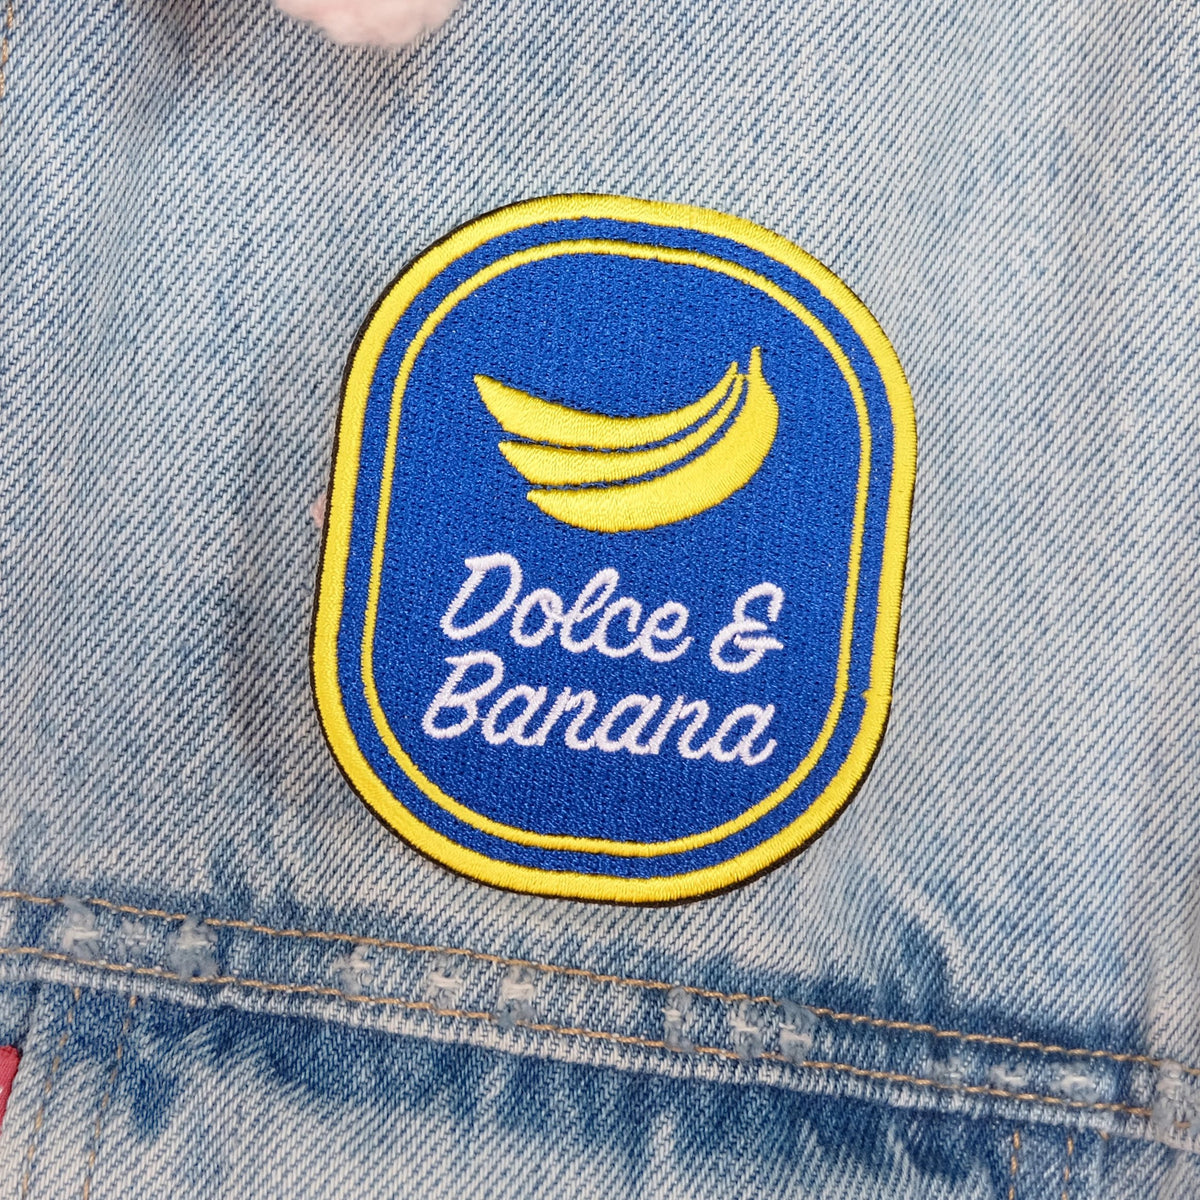 Dolce & Banana Patch - Abbey Eilermann